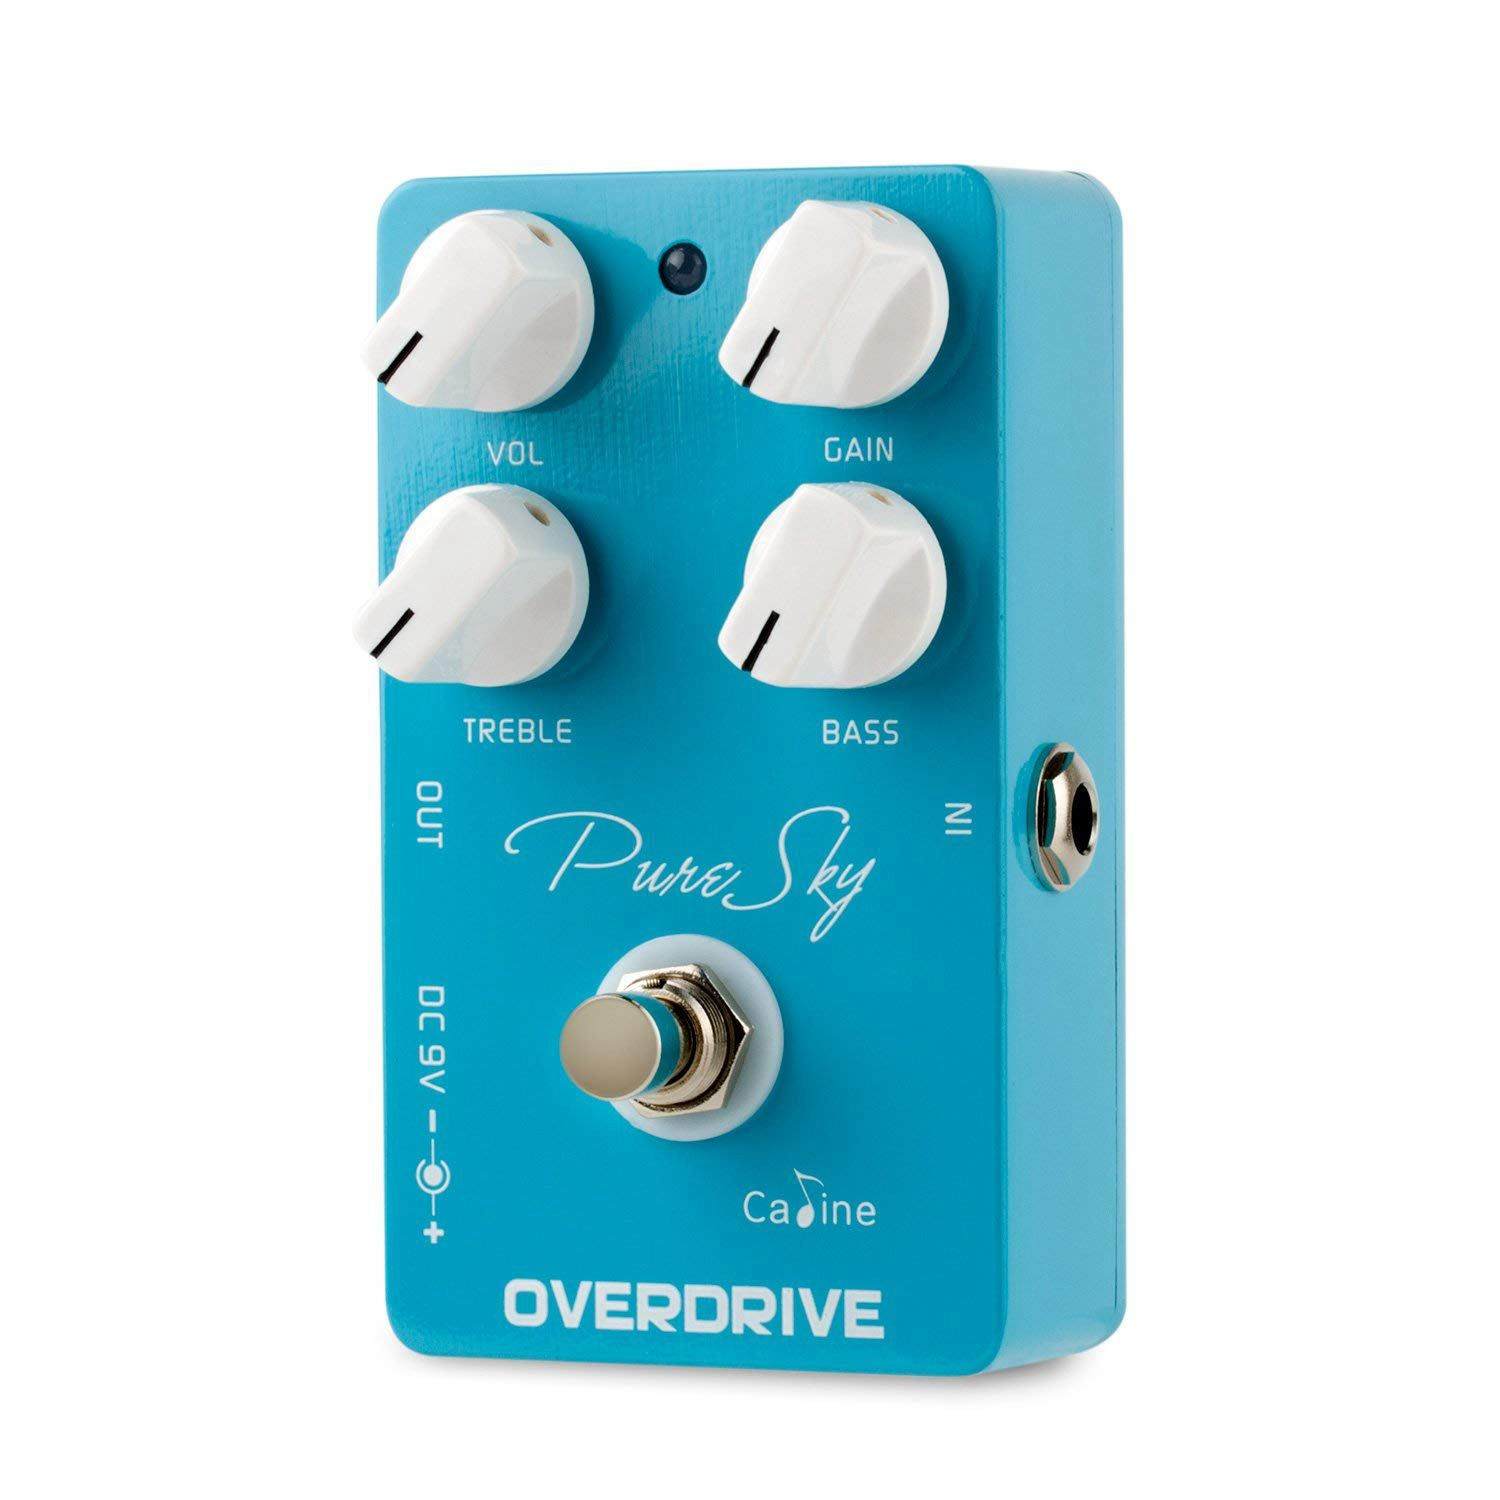 SEWS-CALINE Overdrive Guitar Effect Pedal High True Bypass with Aluminum Alloy Housing CP-12 Pure Sky image